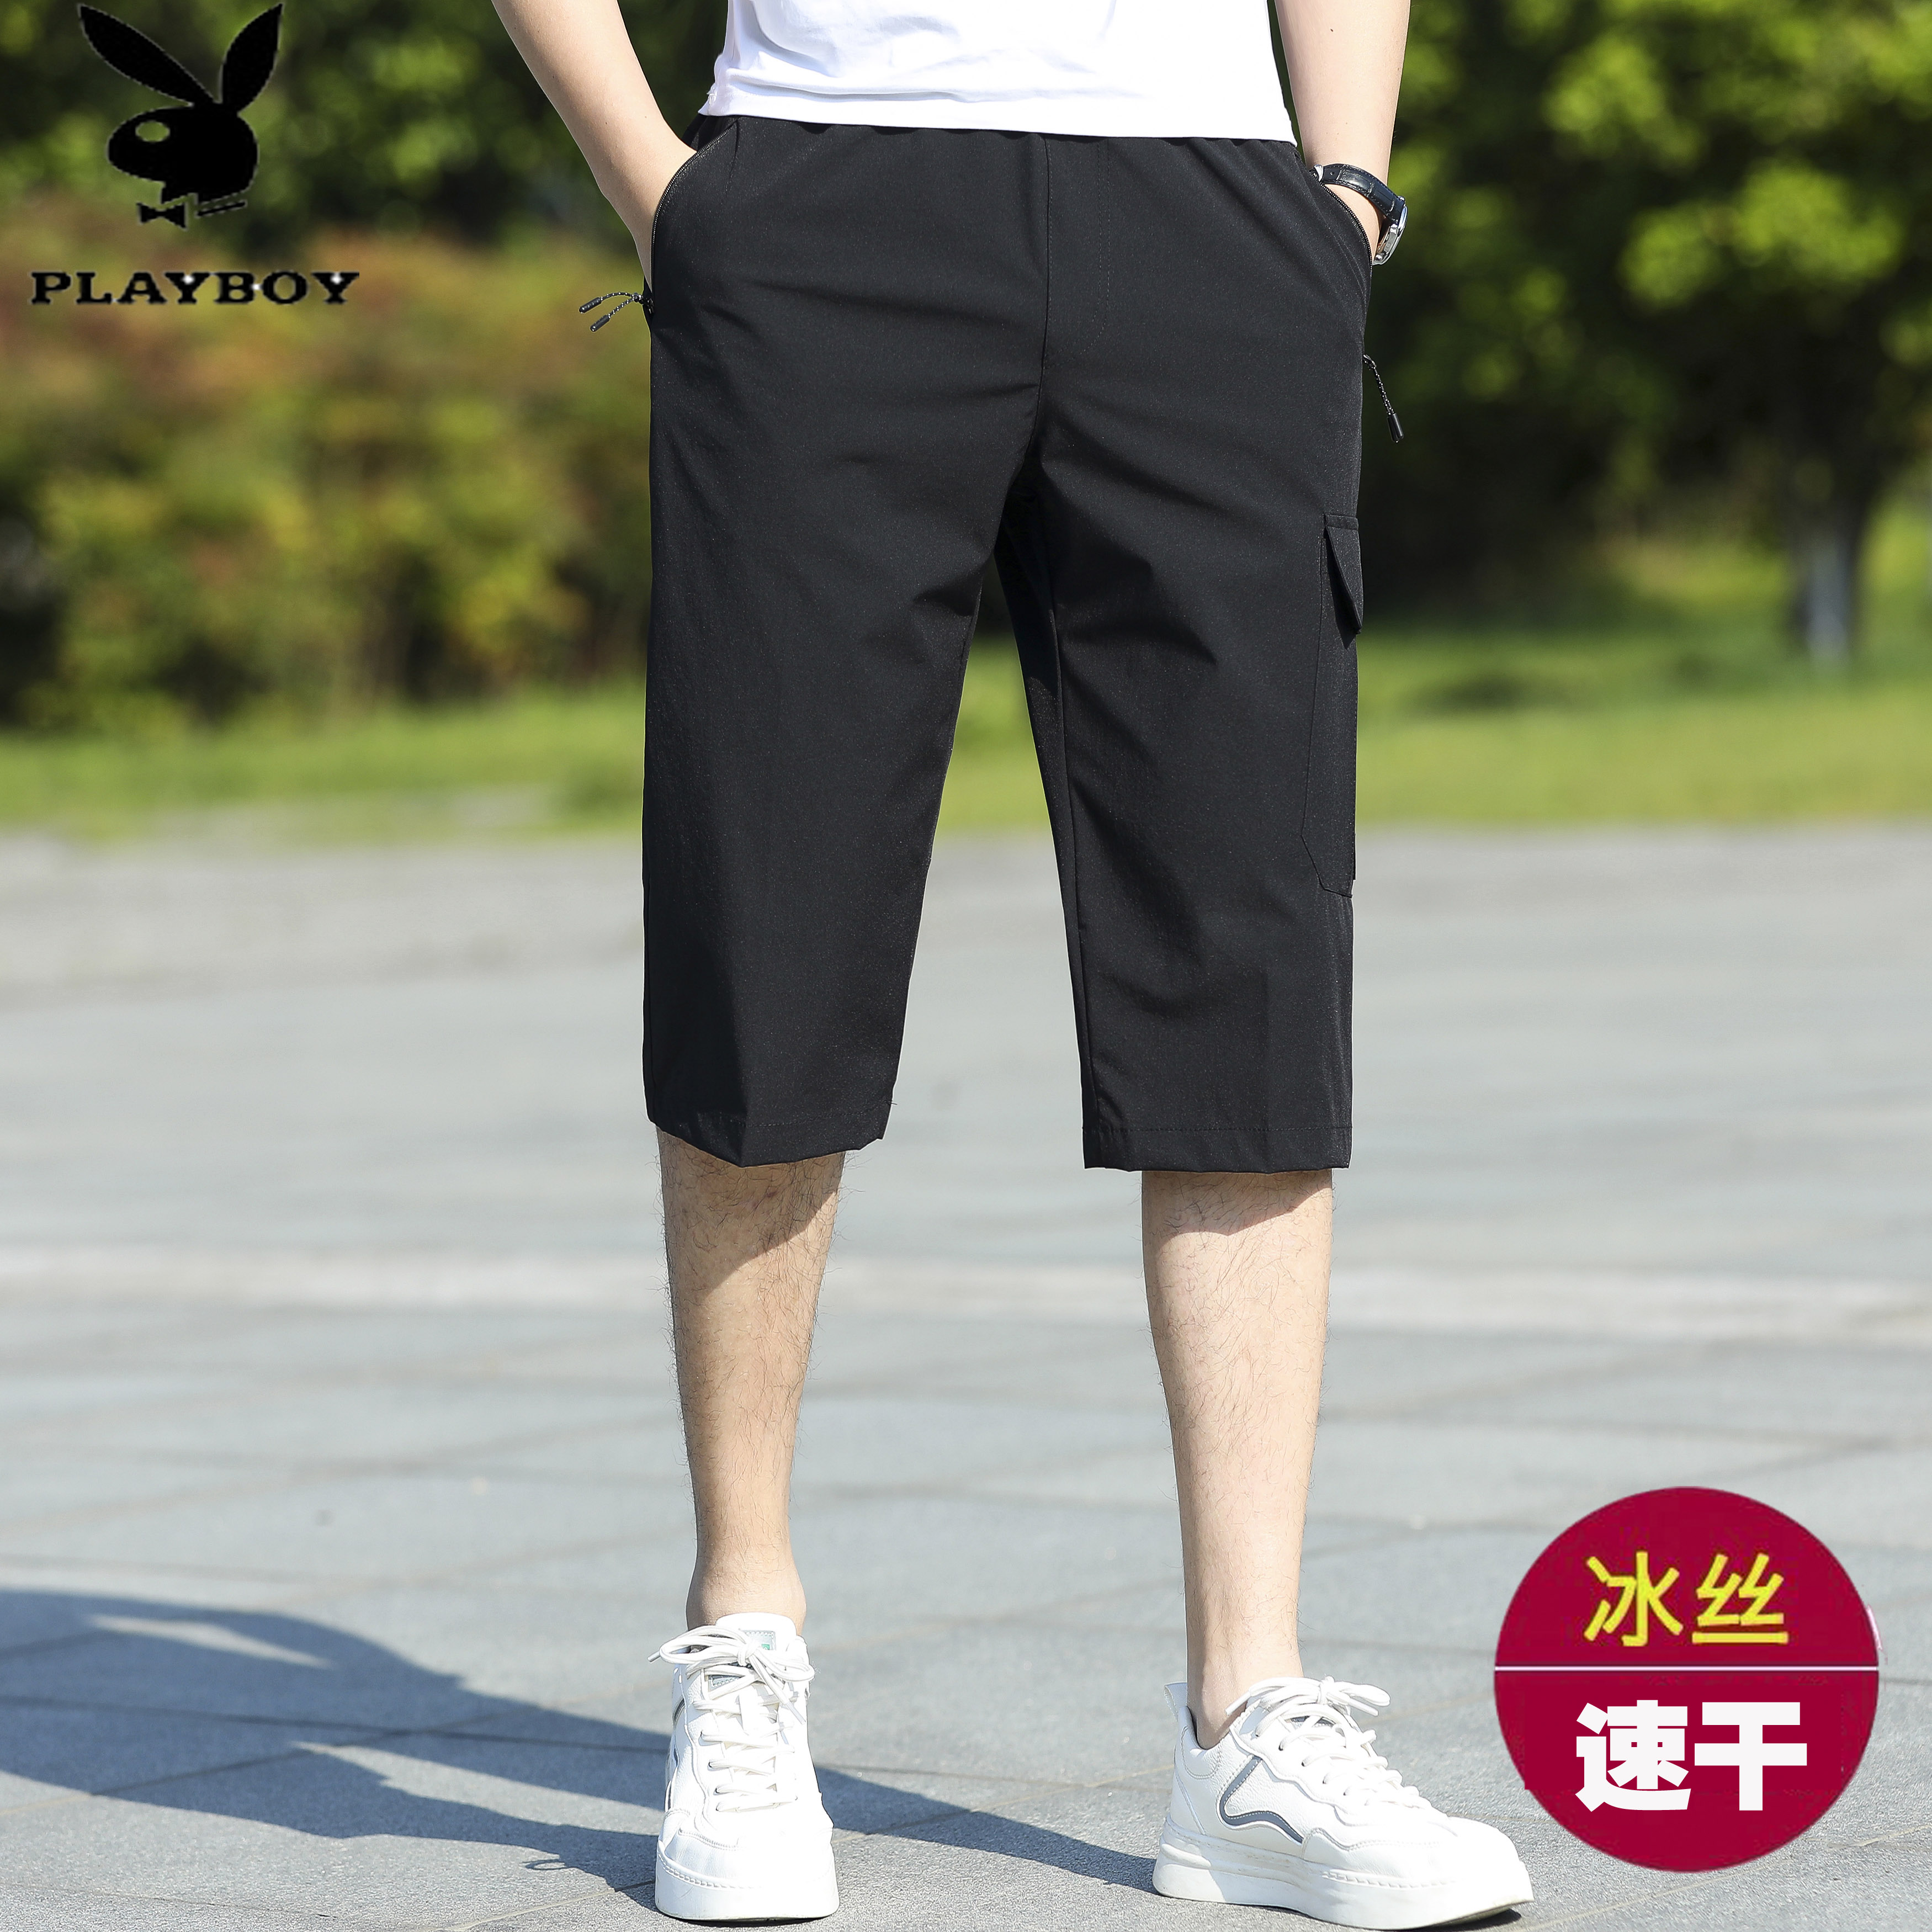 Playboy quick drying Capris mens summer thin large size loose fitting pants ice sports Capris